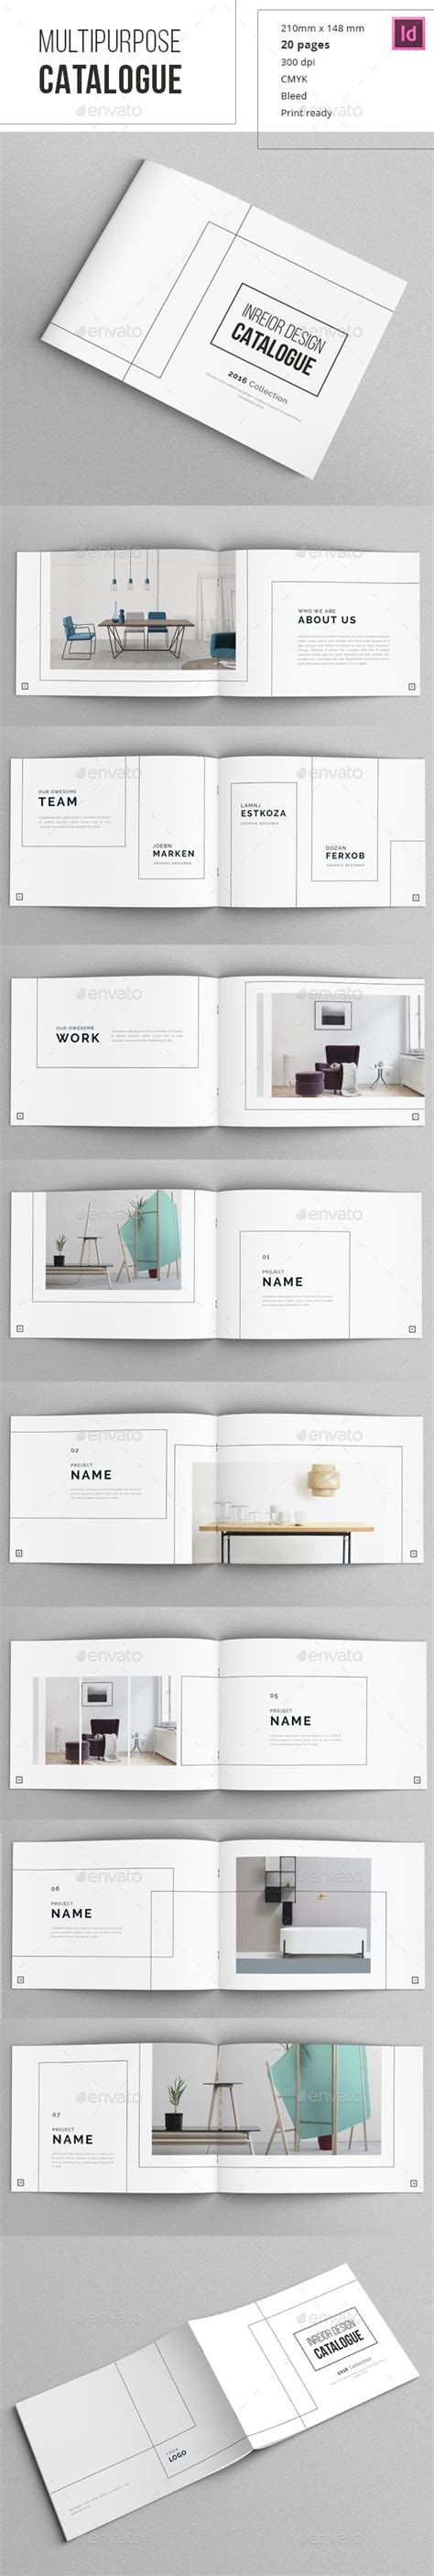 indesign book layout templates minimal indesign catalogue the shape typography and